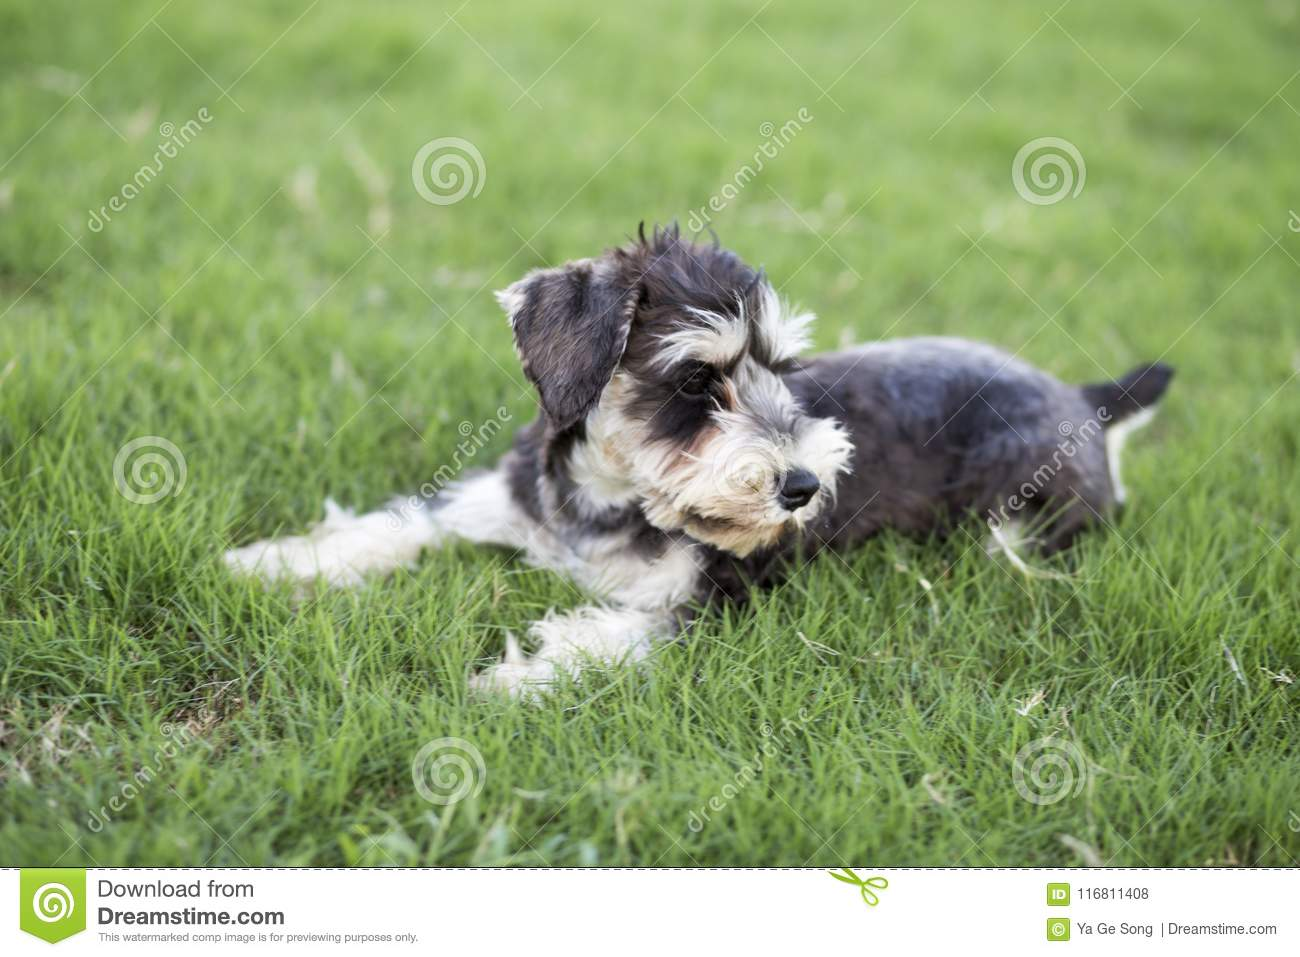 Schnauzer Stock Photo Image Of Haired Dogs Lovely 116811408